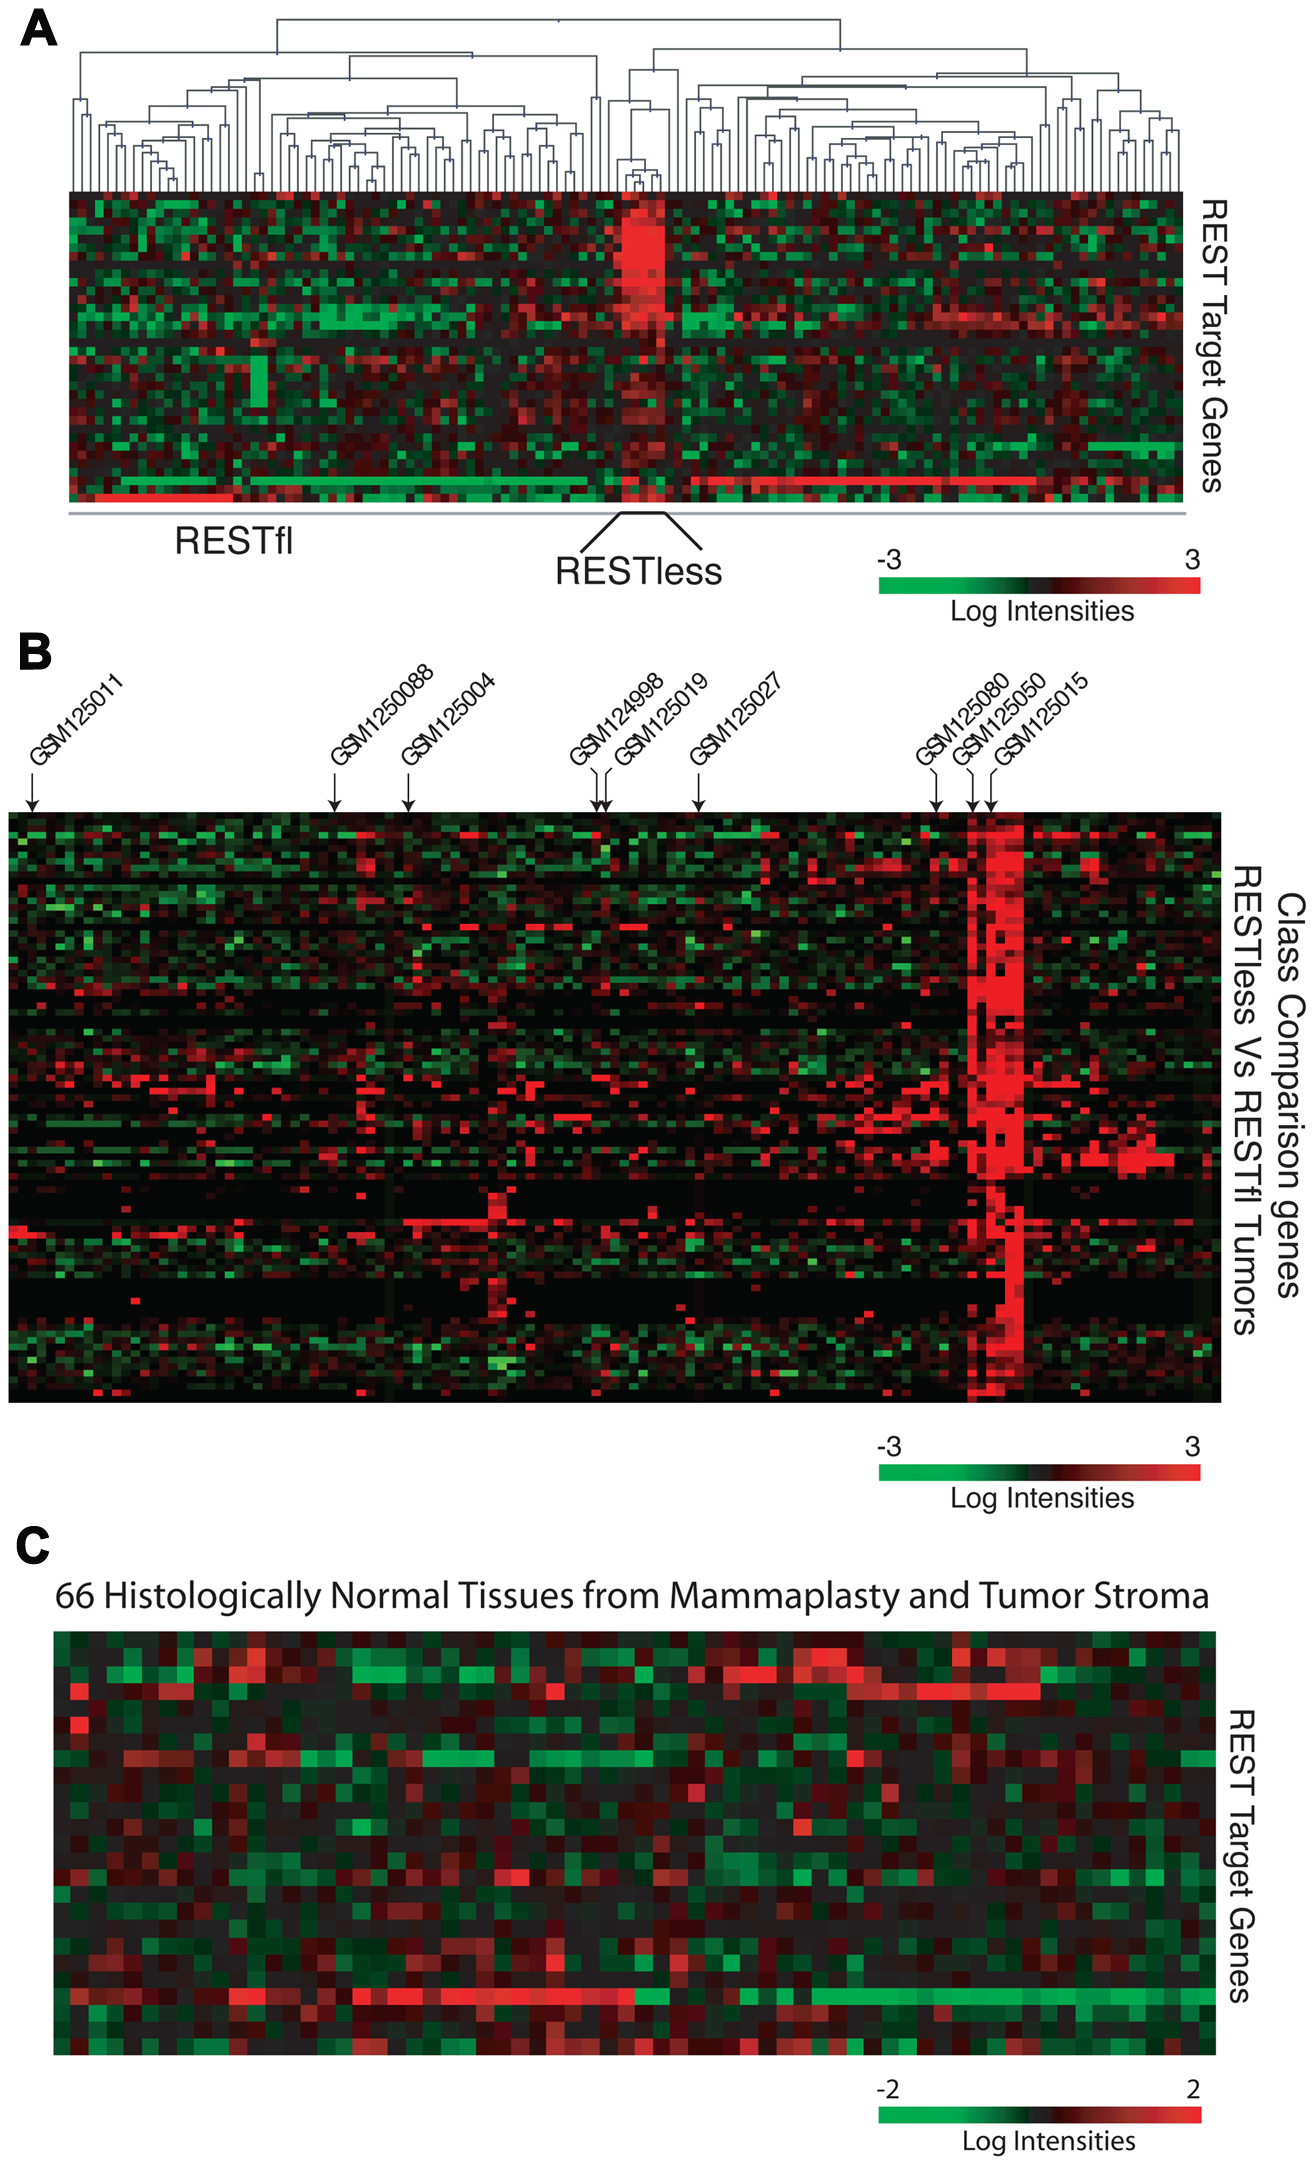 The 24-gene signature detects loss of REST function in breast tumors.